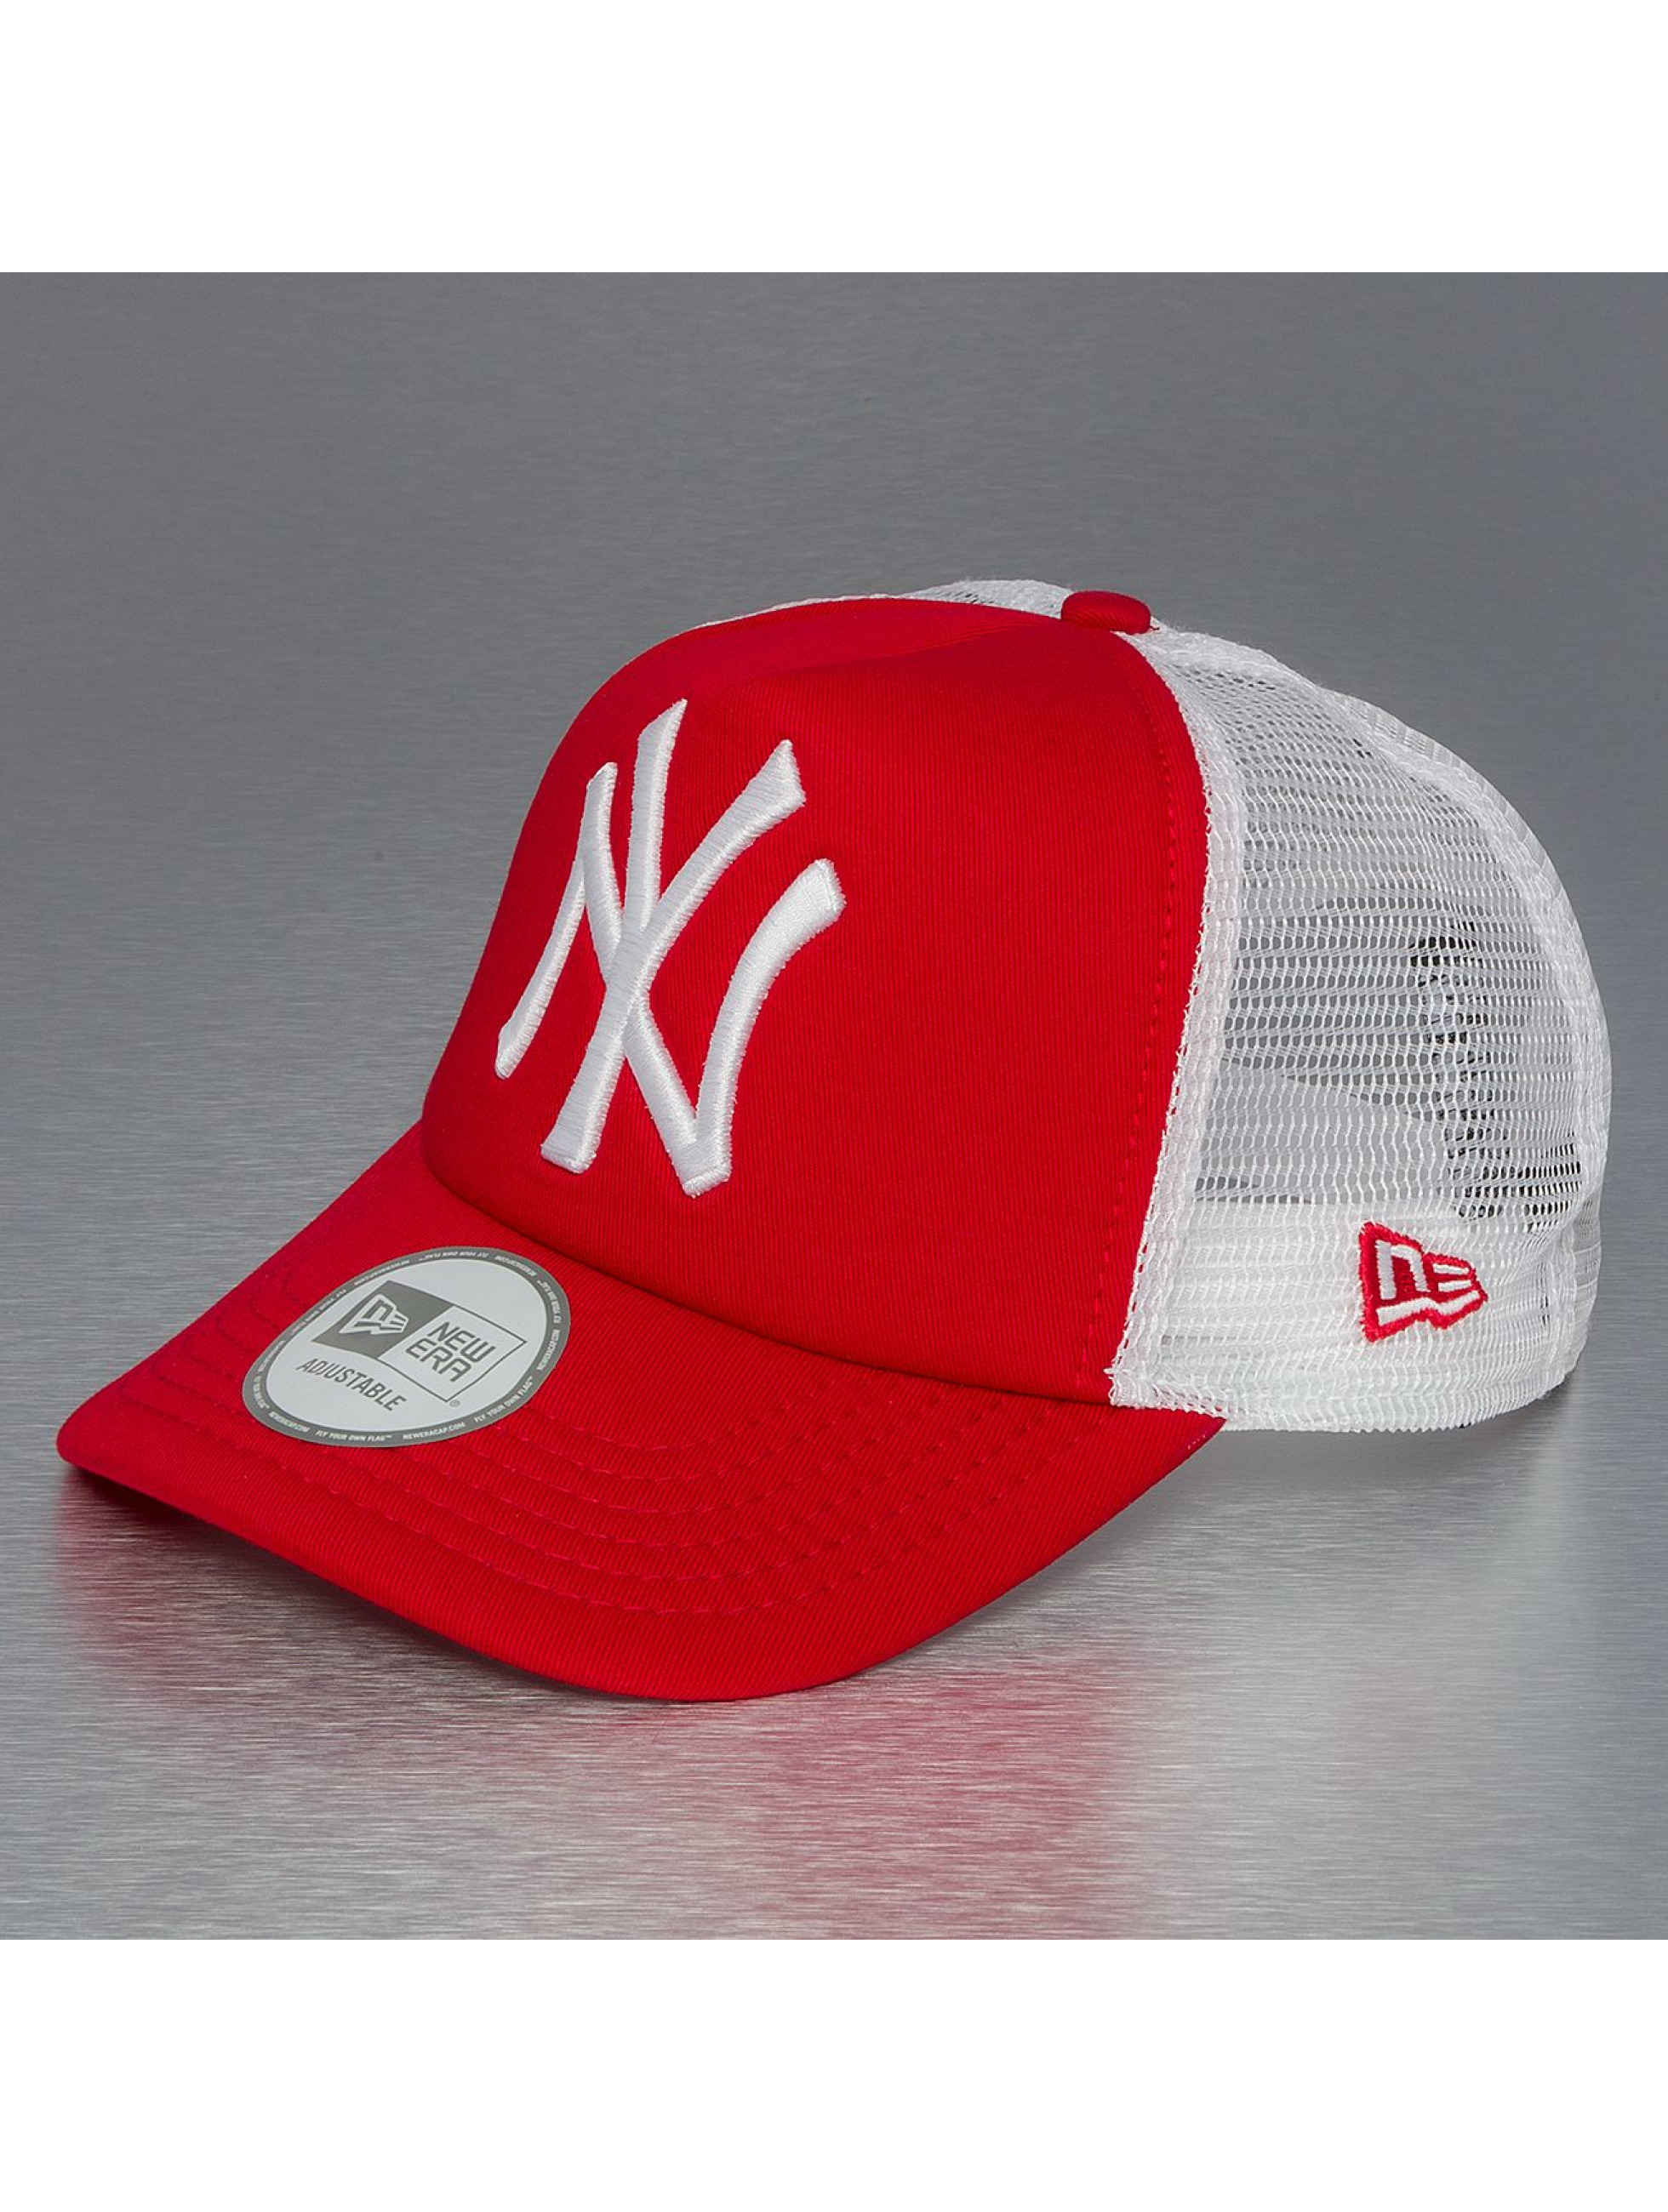 new era clean ny yankees rouge casquette trucker mesh. Black Bedroom Furniture Sets. Home Design Ideas